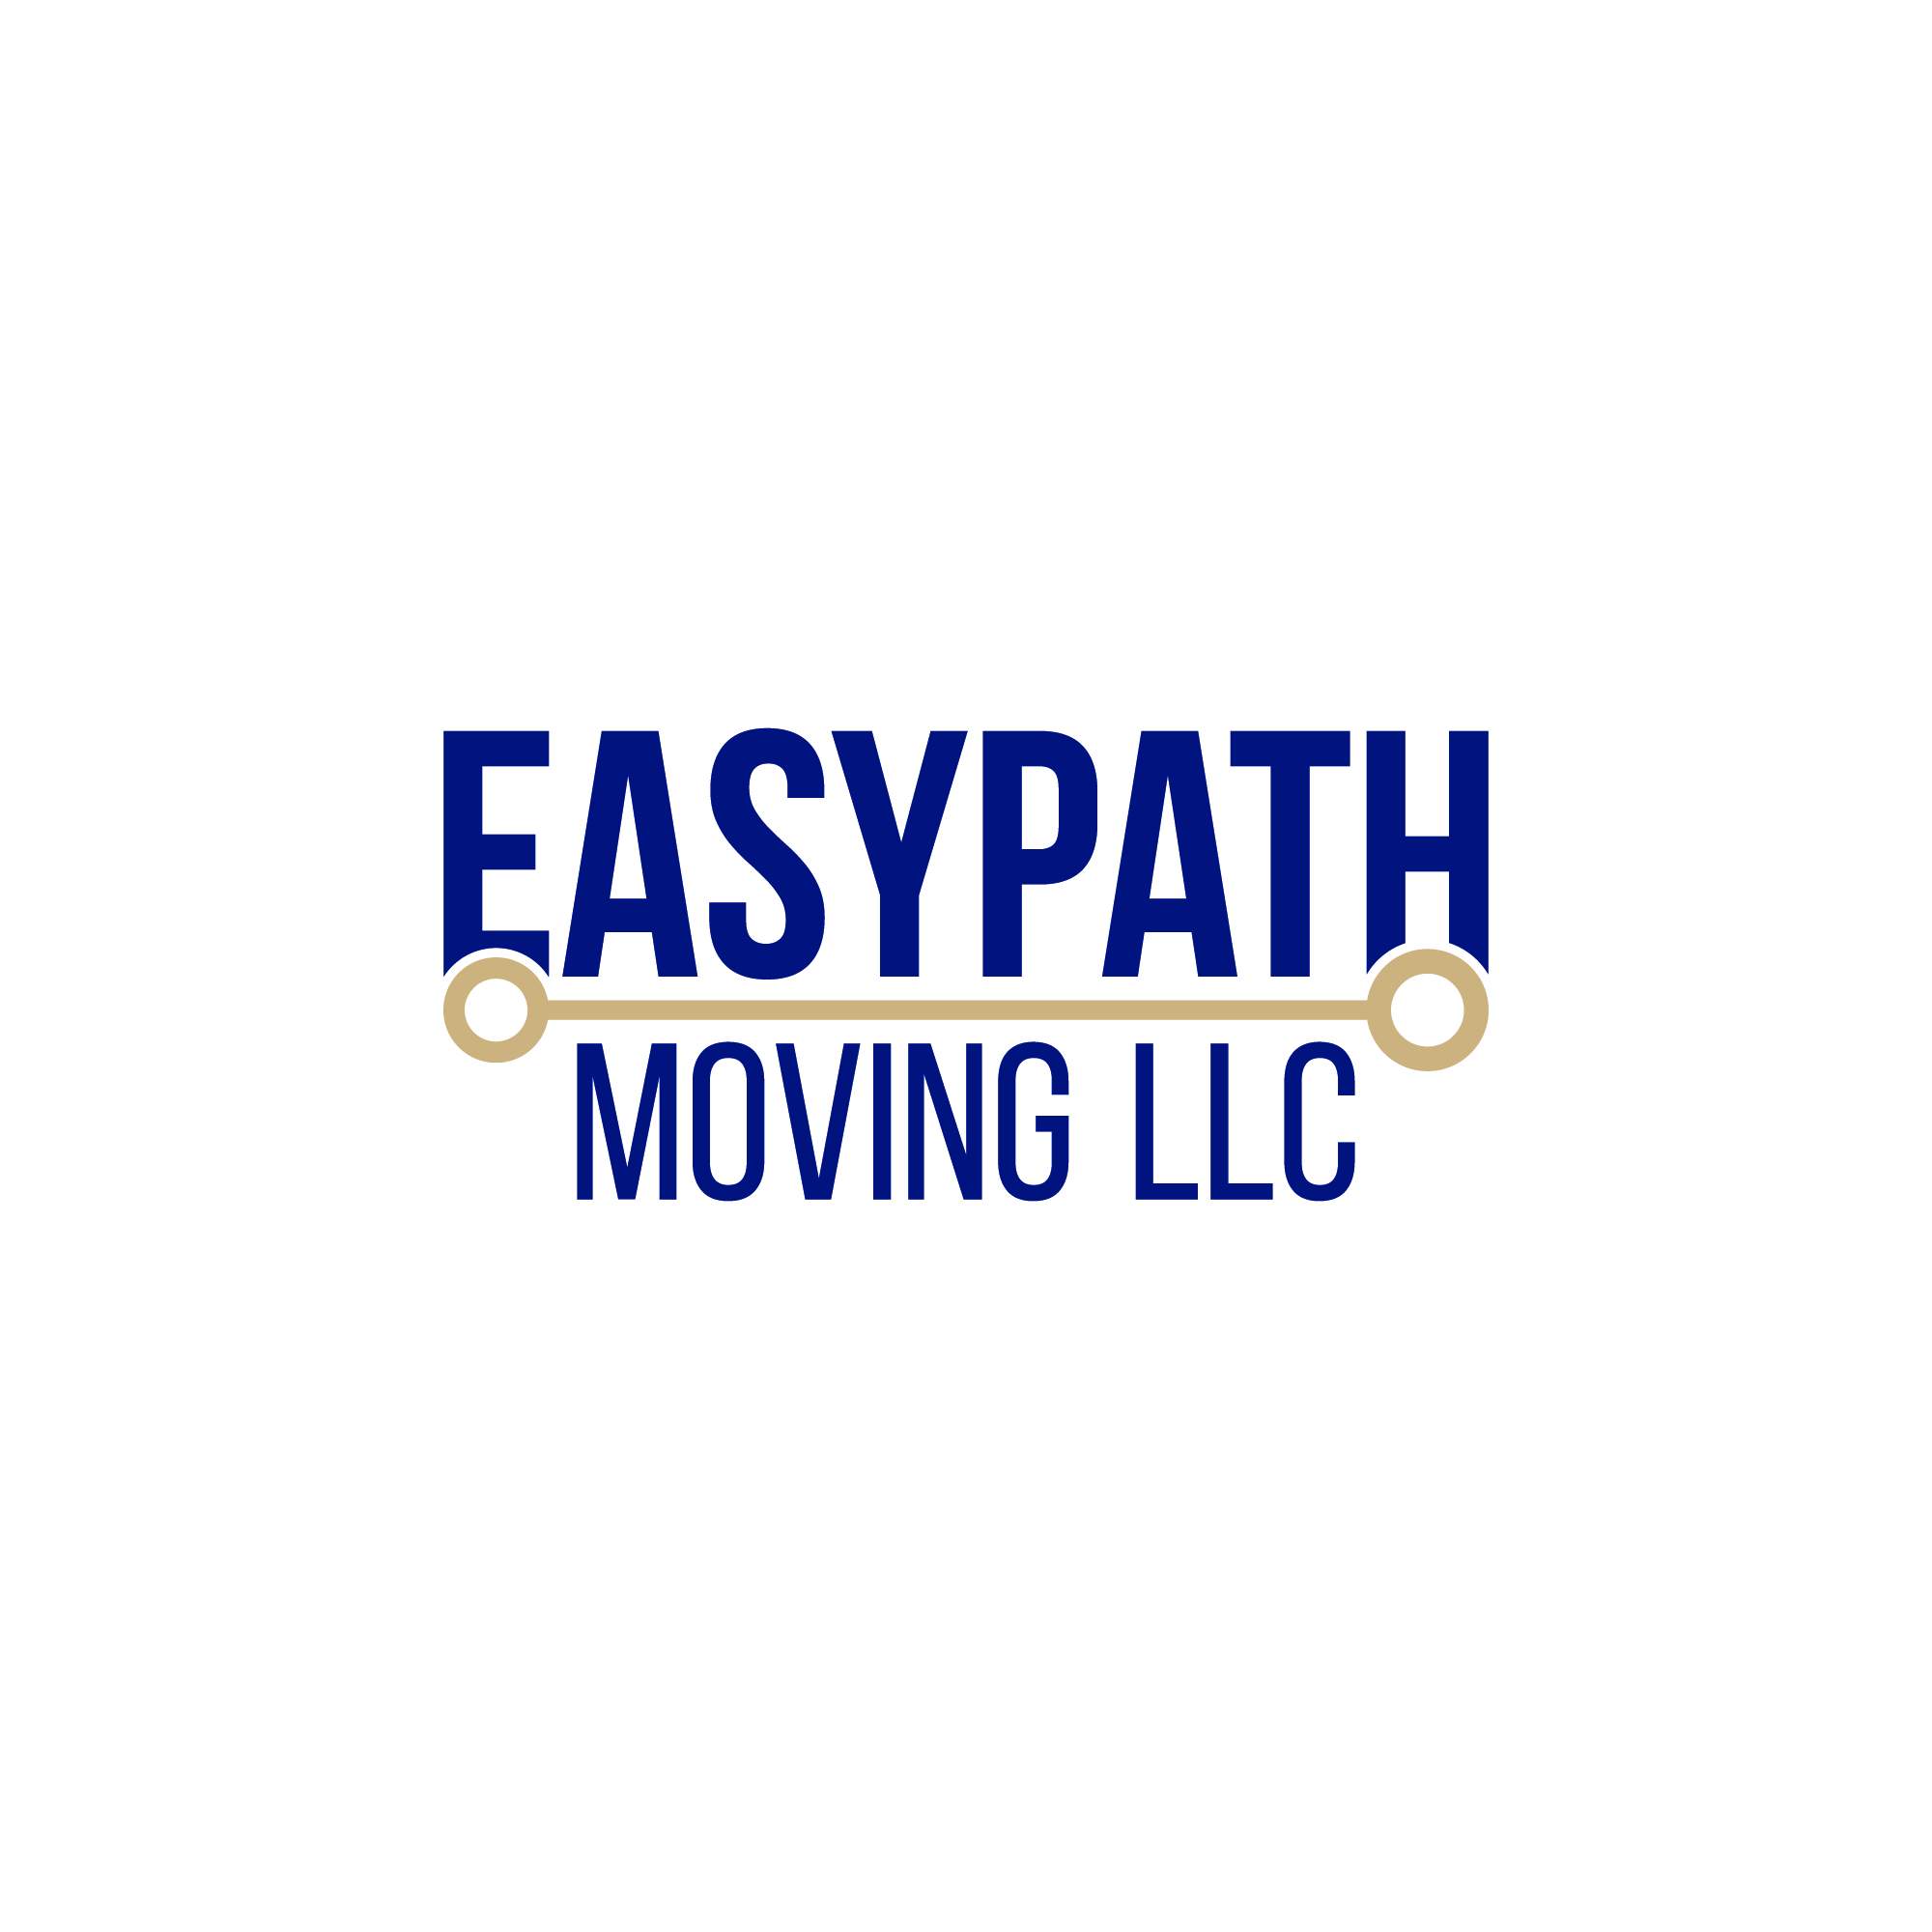 EasyPath Moving LLC